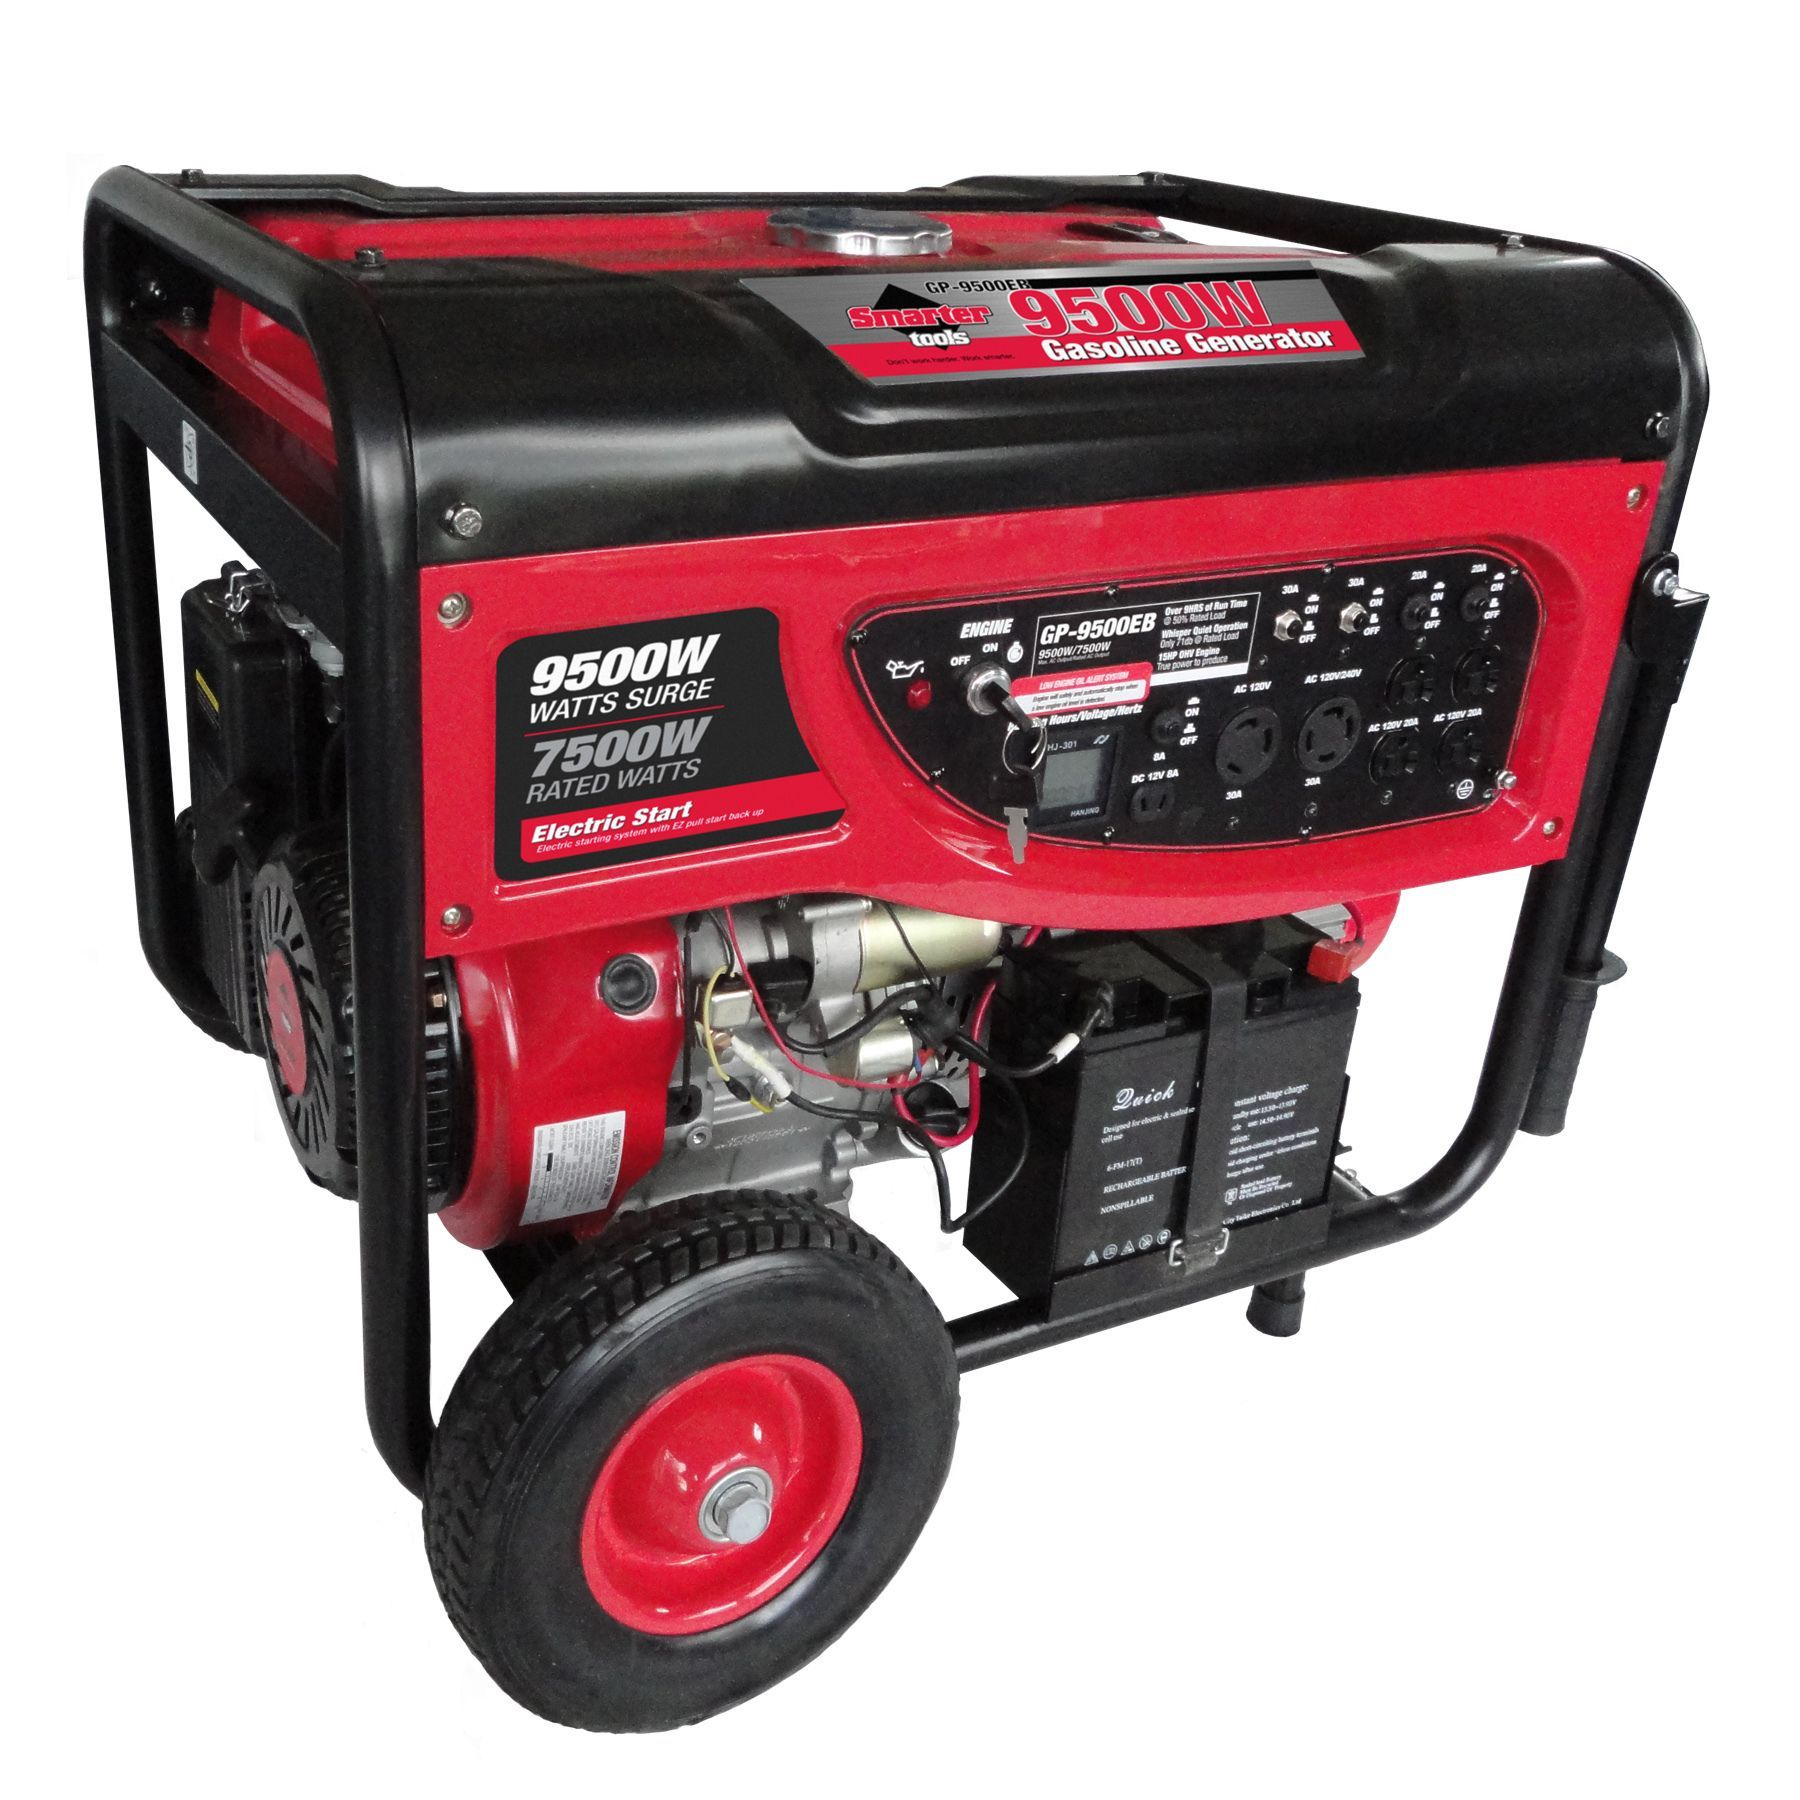 Smarter Tools 9500 watt Portable Generator with Electric Start and